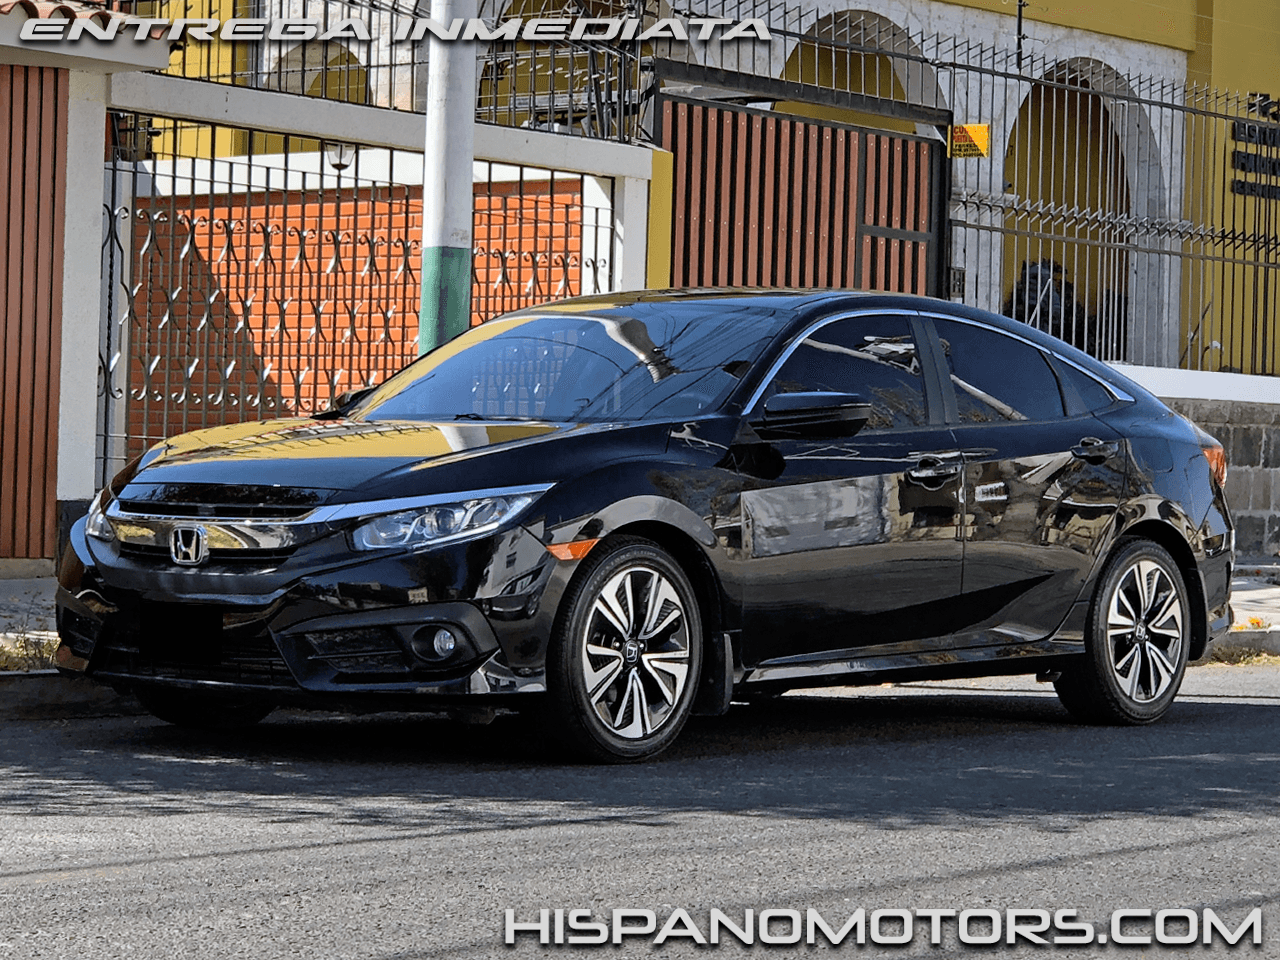 2017 HONDA CIVIC  EX-T 1.5 TURBO (MANUAL) - Arequipa - Perú - auto importado por Hispanomotors